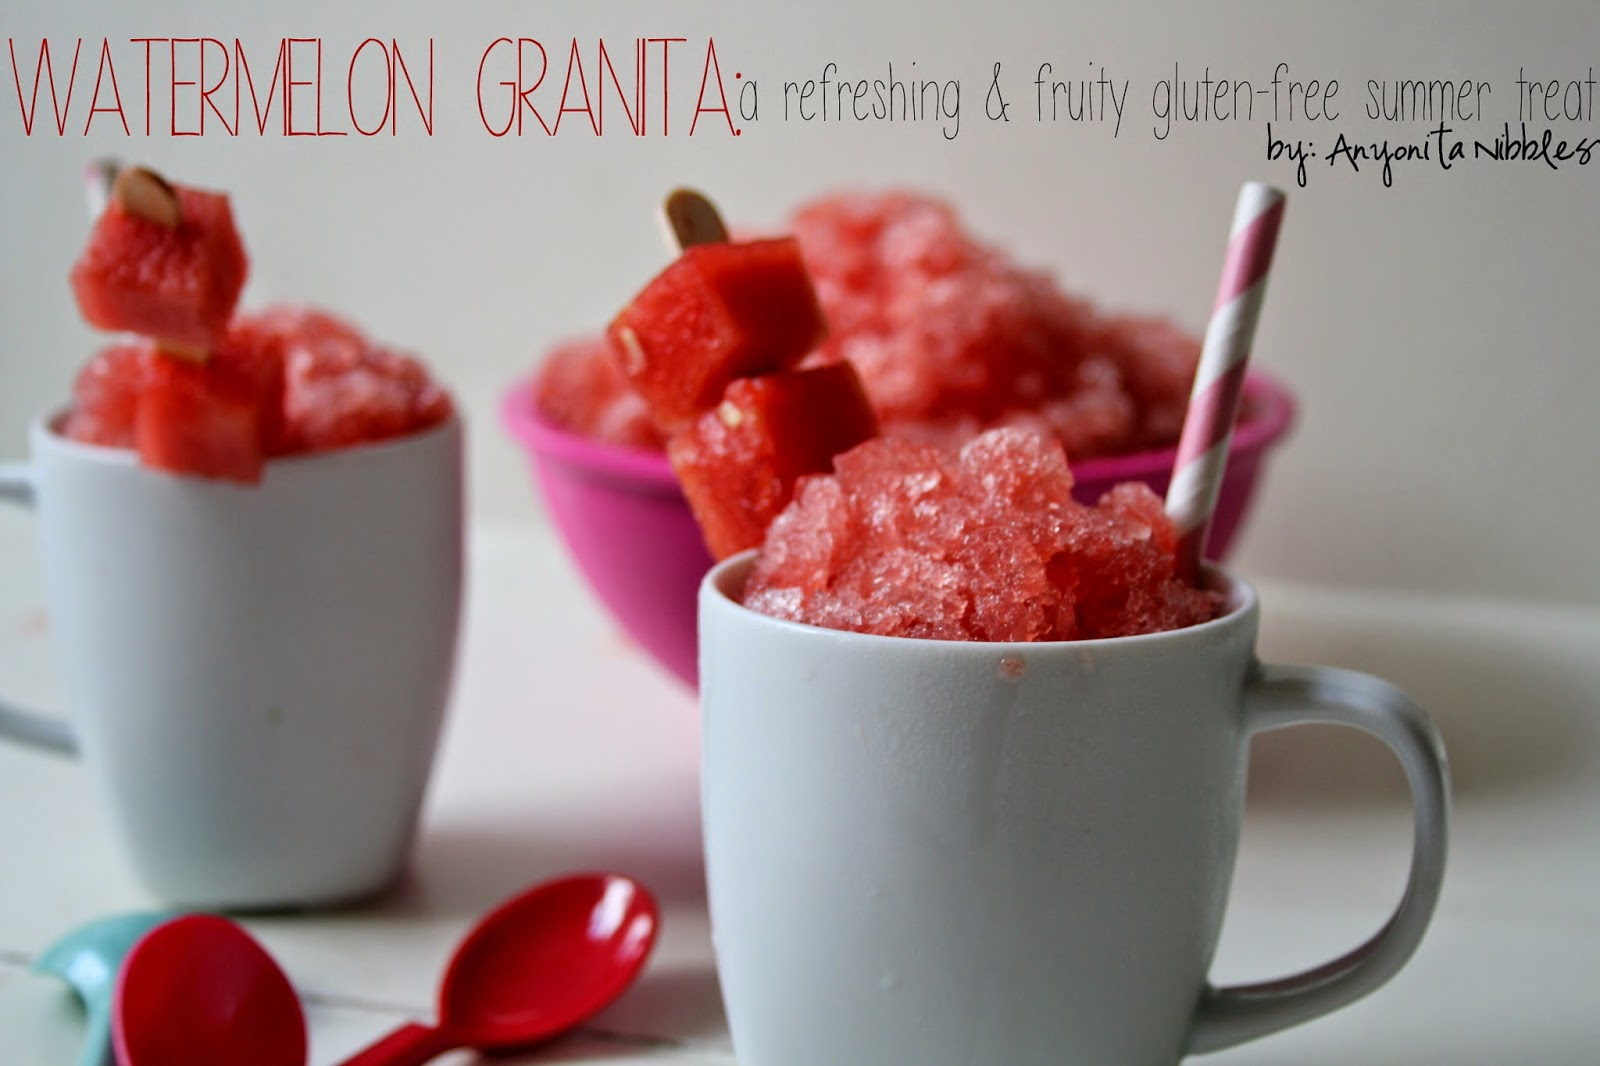 Watermelon Granita: a refreshing and fruity summer treat by Anyonita nibbles